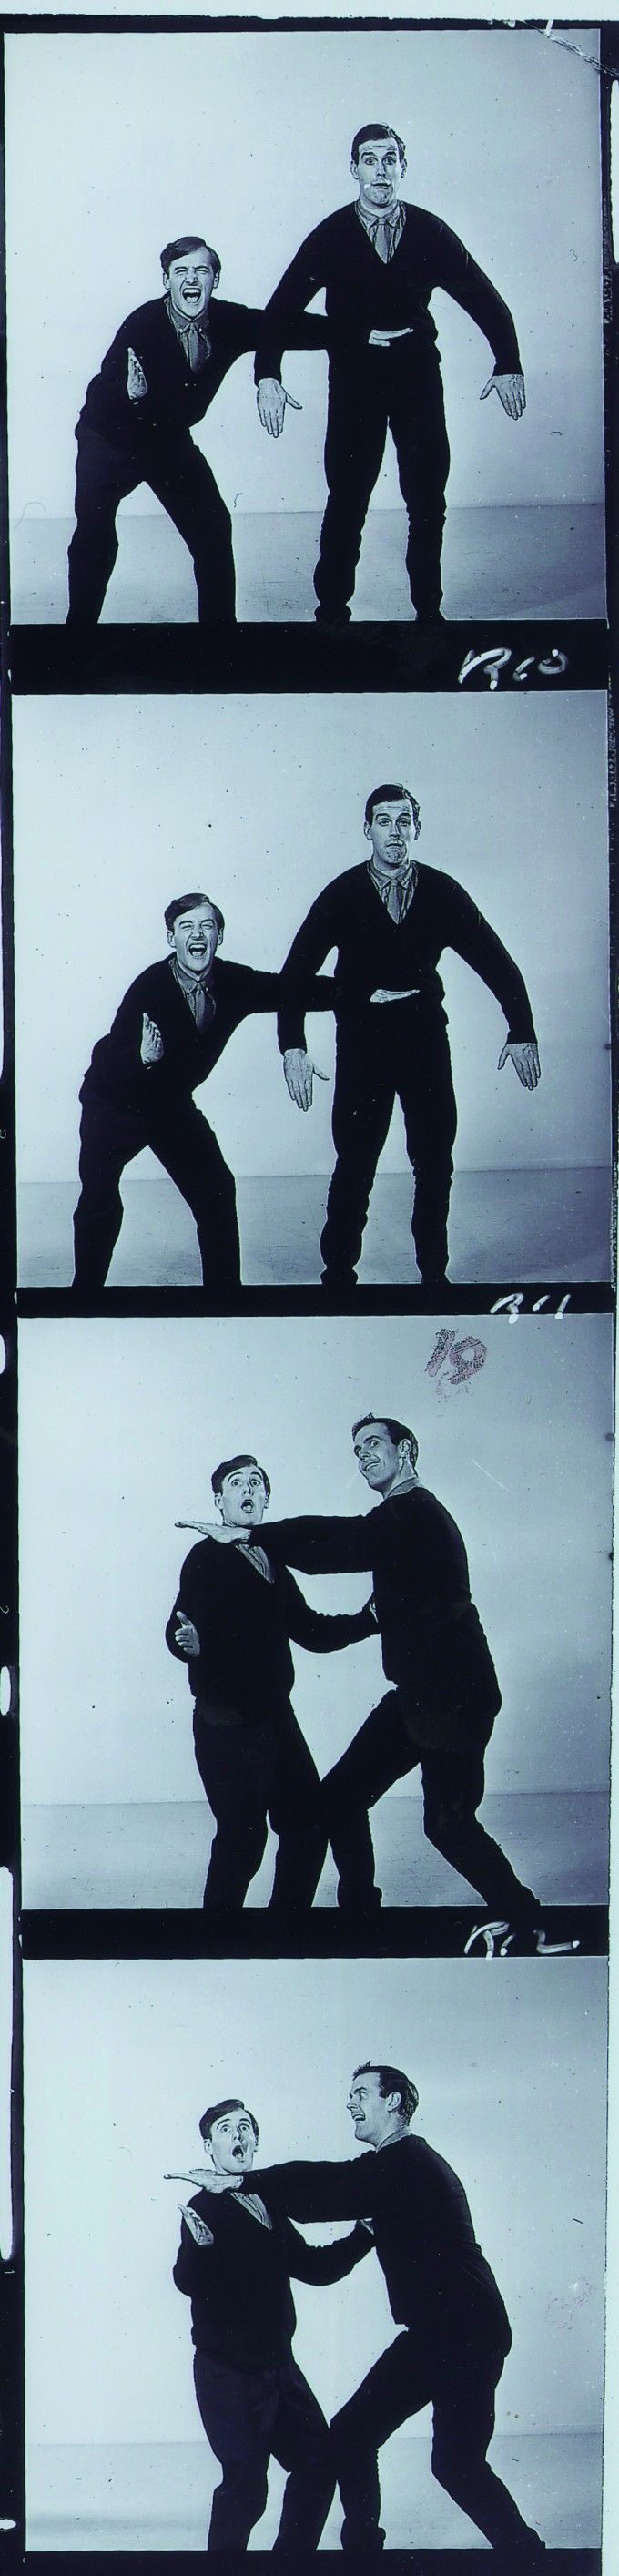 David Hatch from the Cambridge Circus and me fooling around.